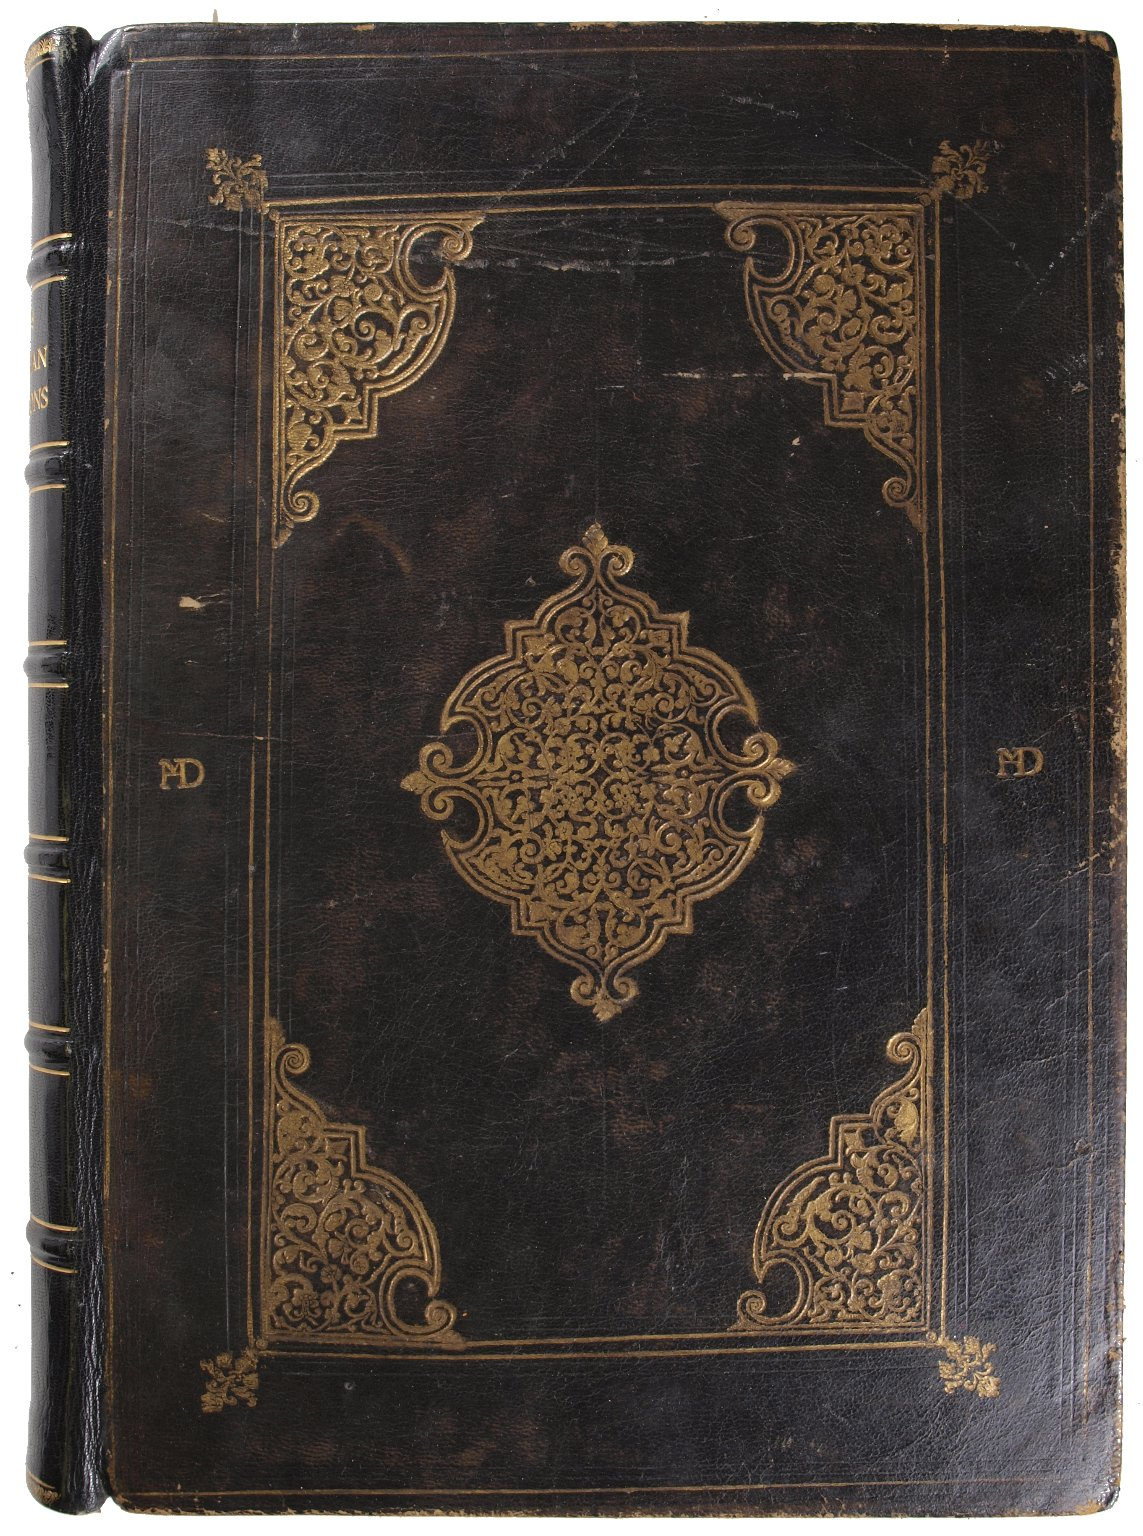 """Front cover with monogram intials """"HMD"""" of Humphrey Dyson, STC 7758.3."""